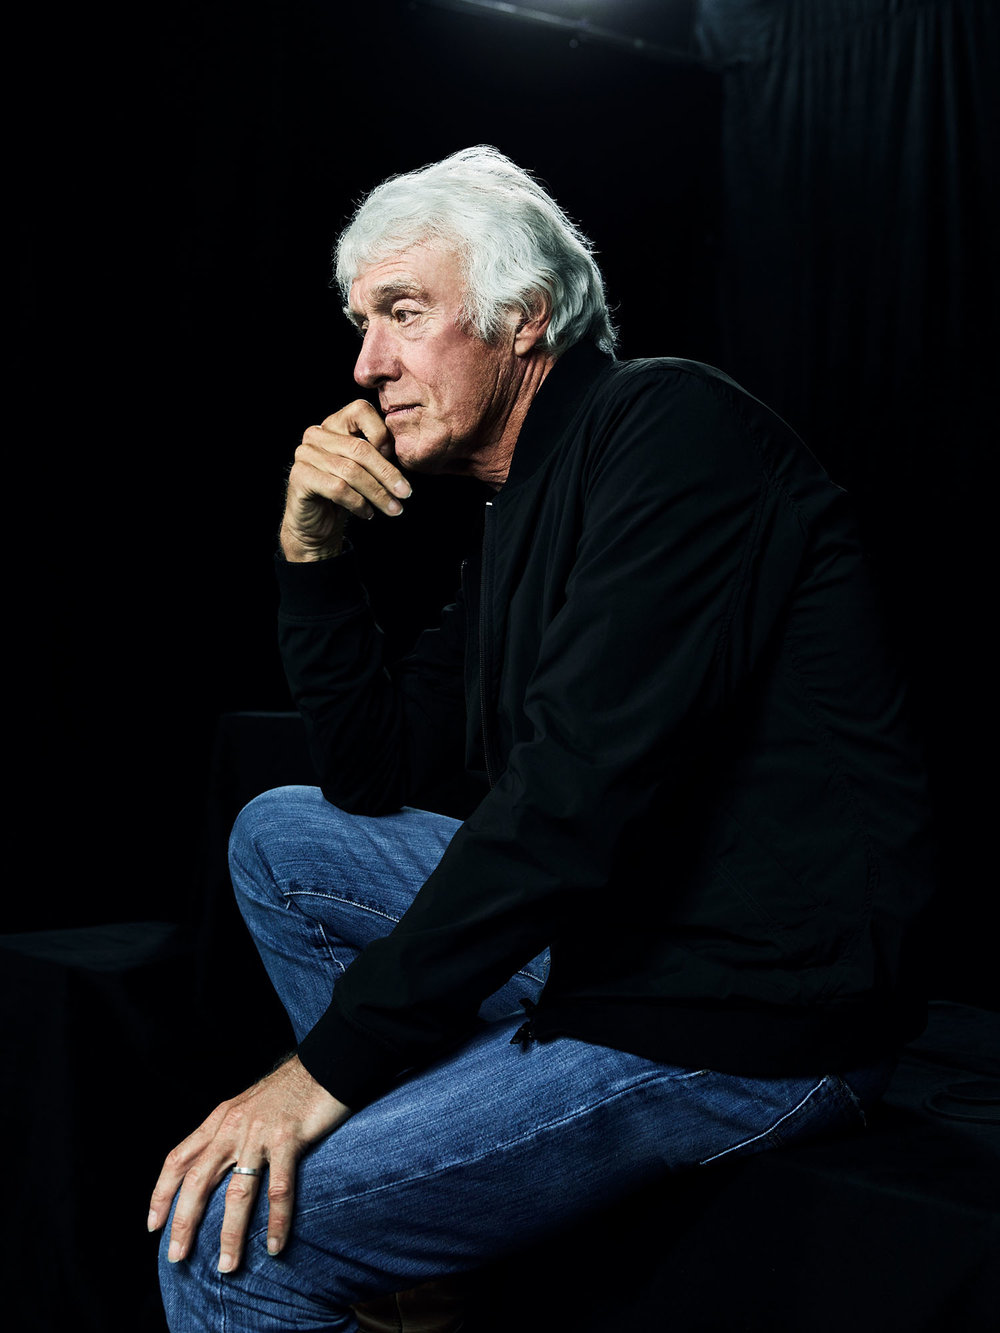 Roger Deakins, Cinematographer, Los Angeles, California, 2017